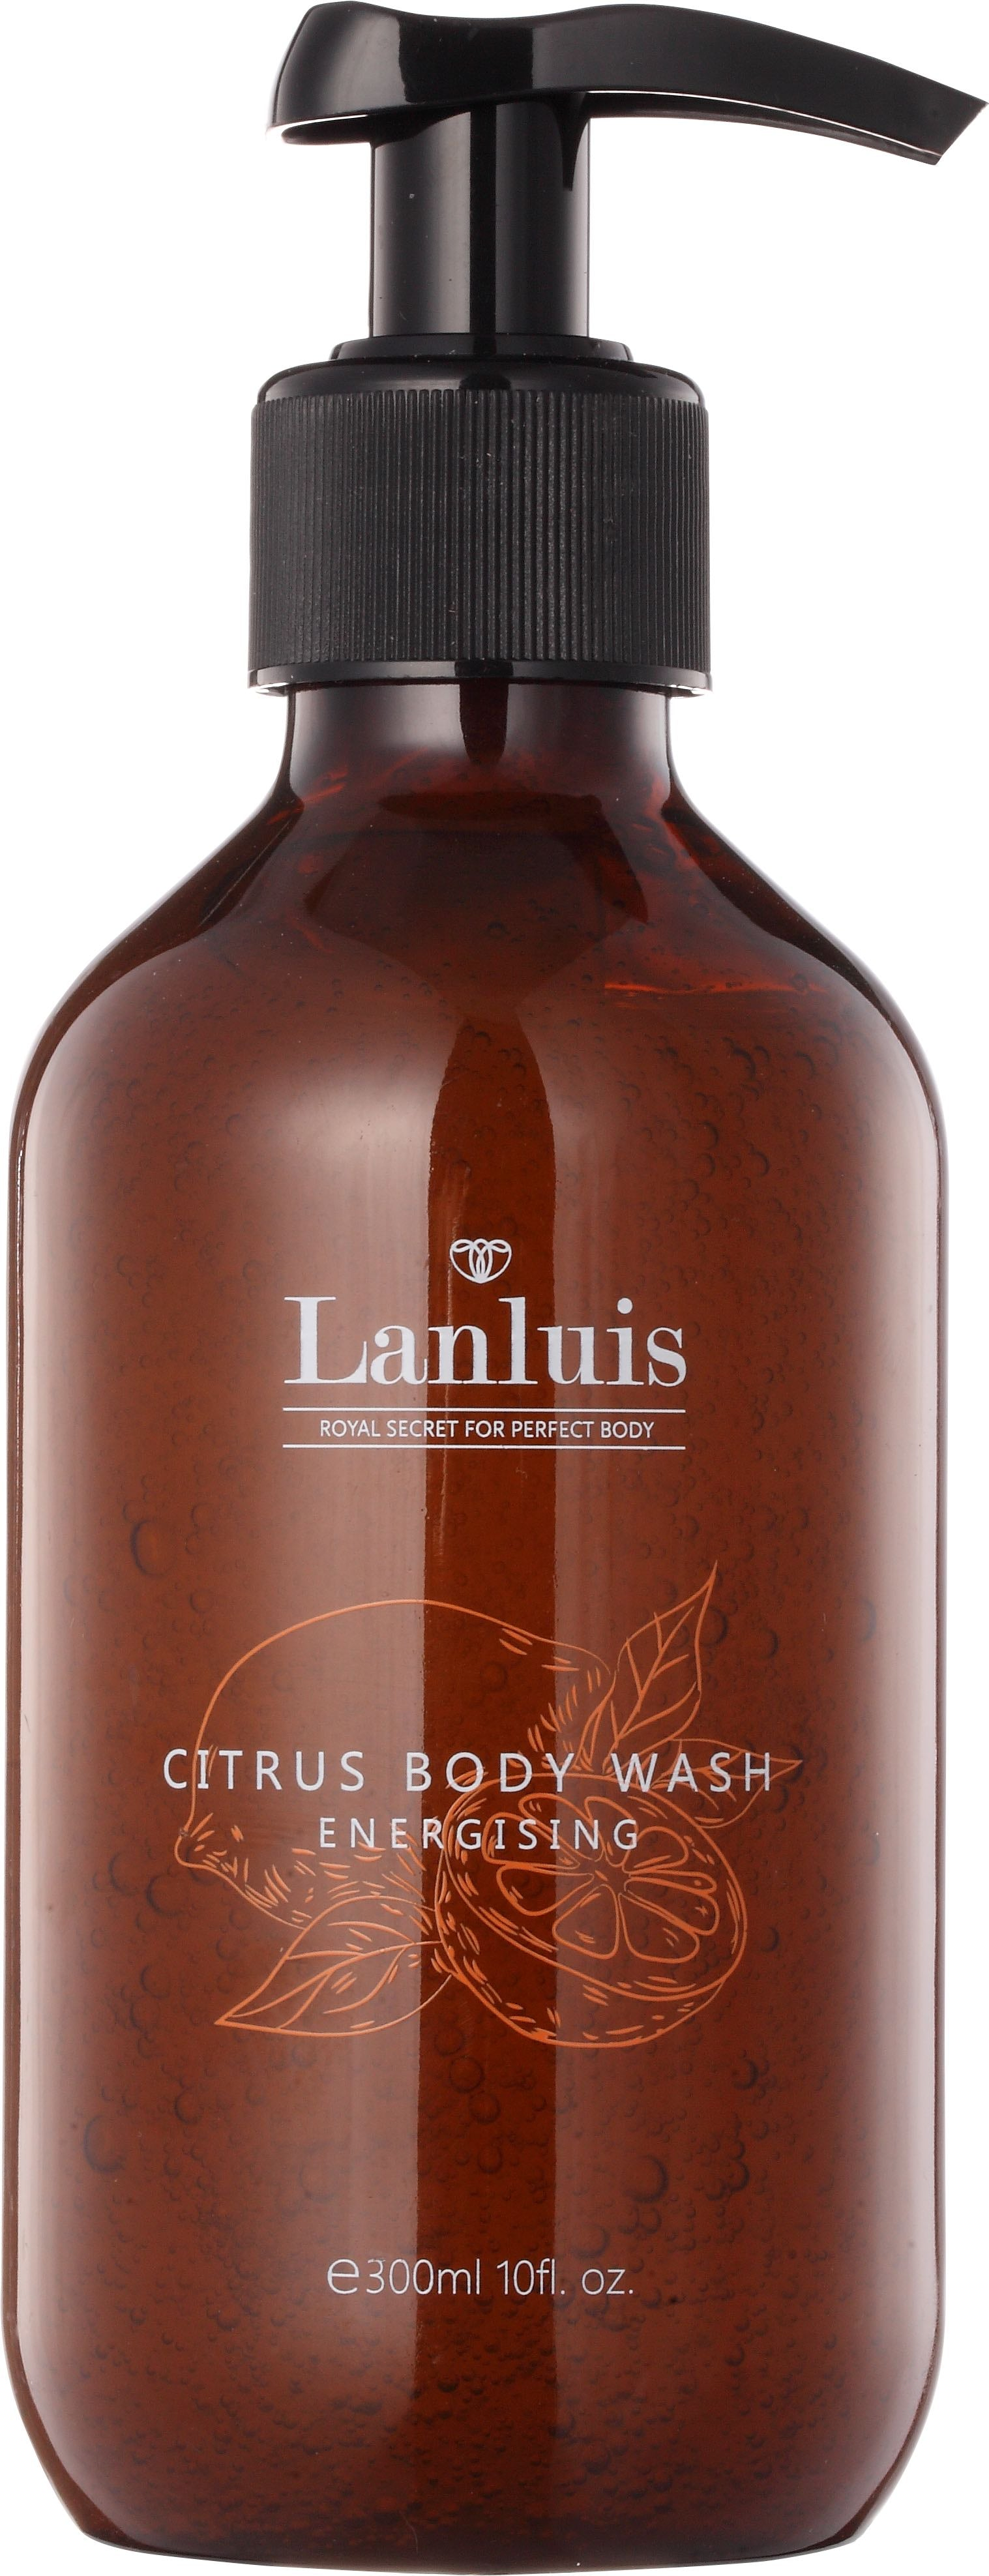 Citrus Body Wash - Energising